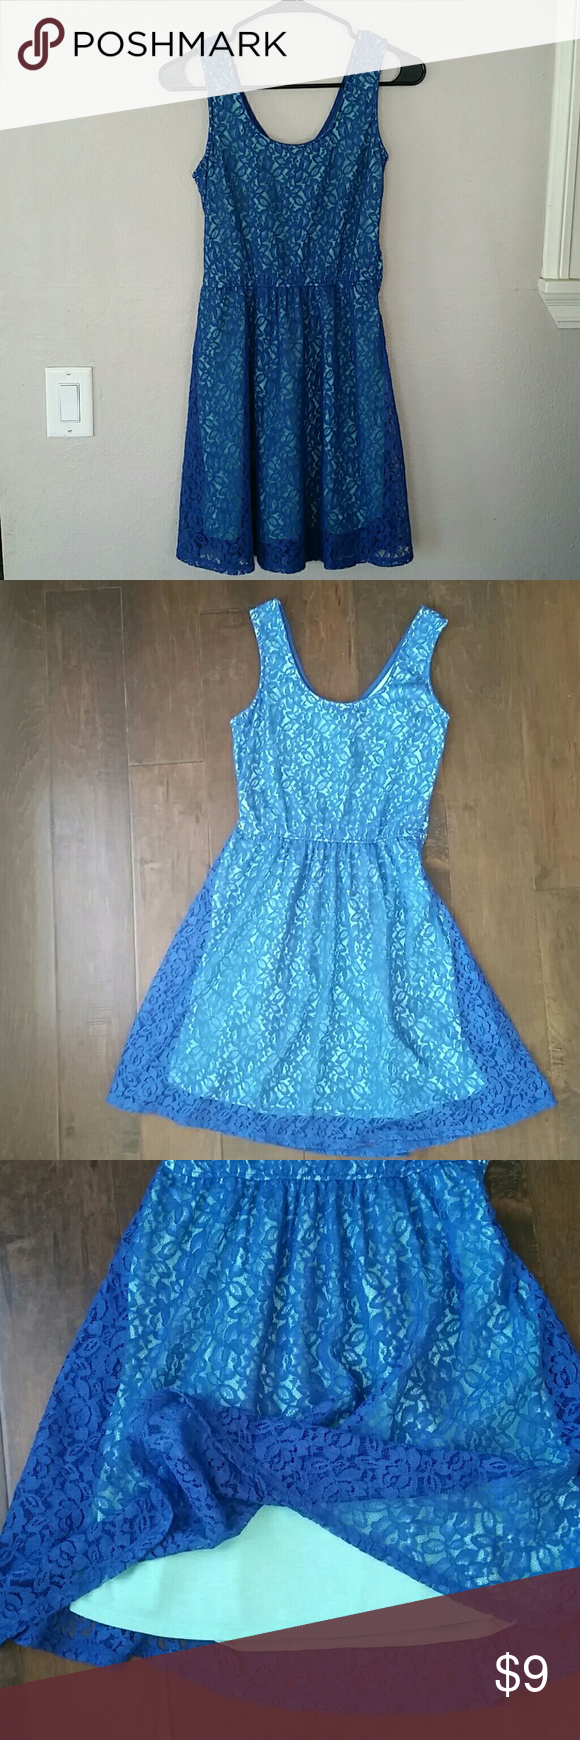 Lace Blue Dress Royal Blue Lace Over A Sea Foam Green Liner